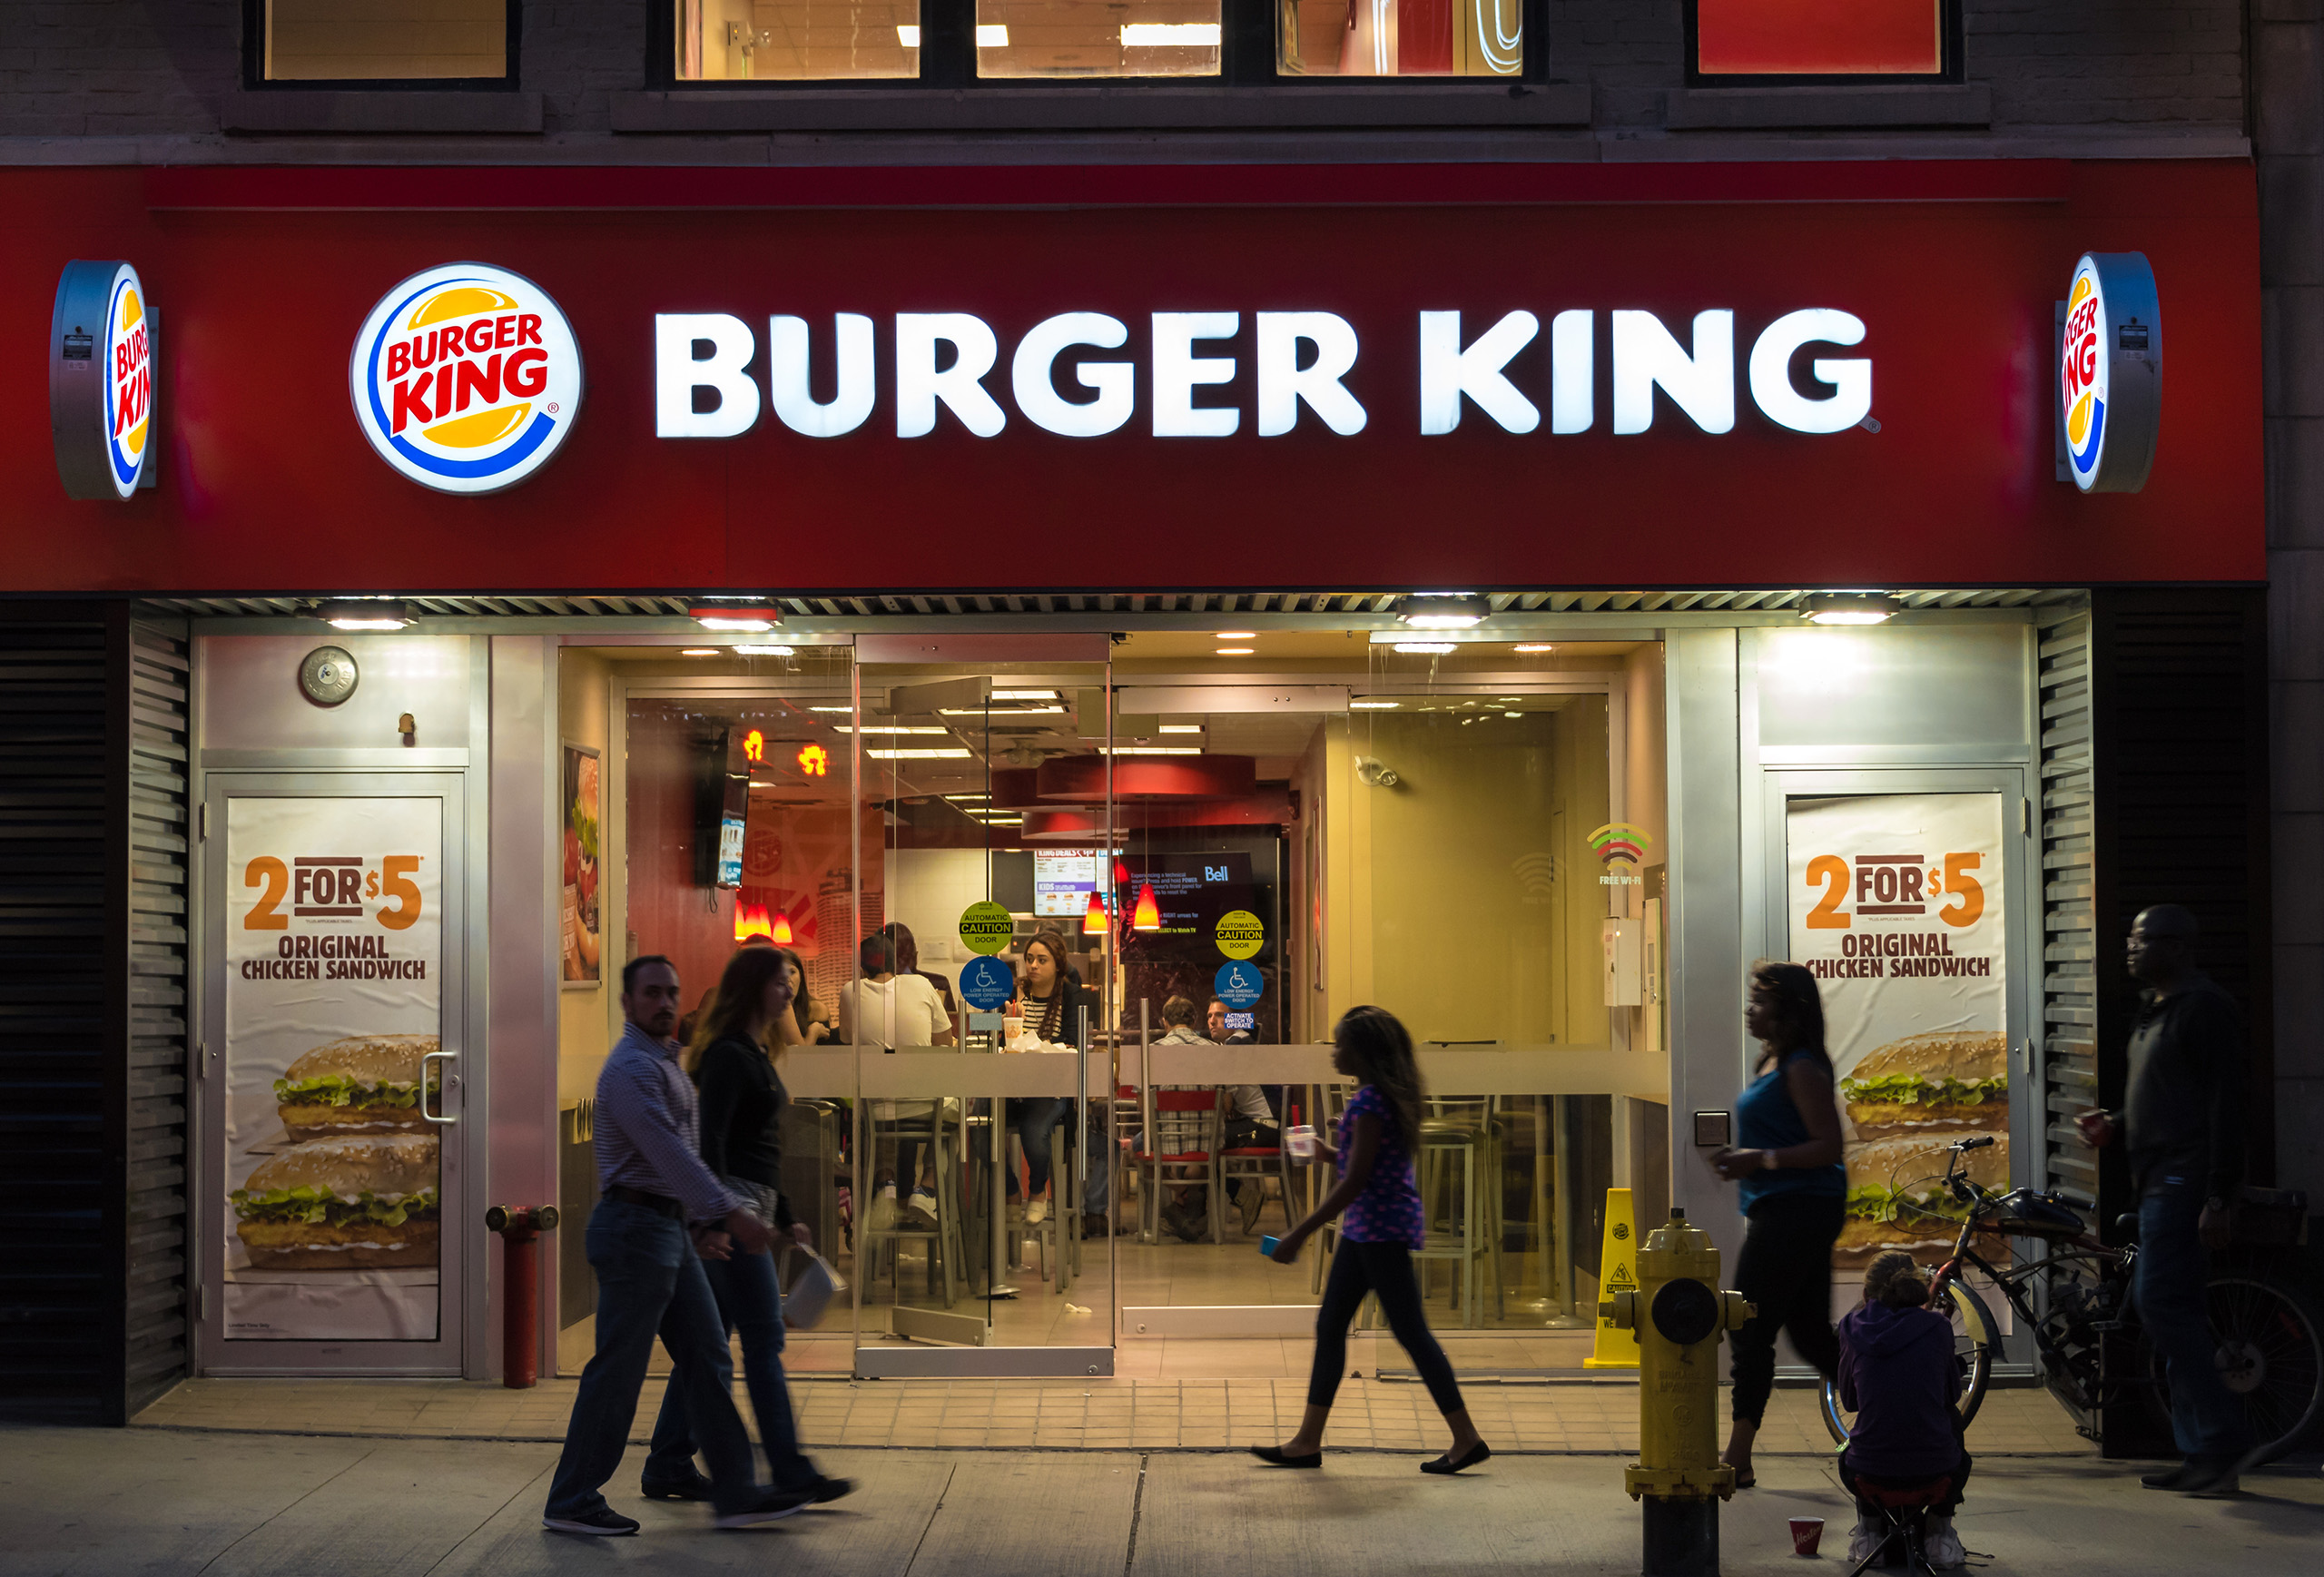 People dining at the Burger King restaurant in Toronto.